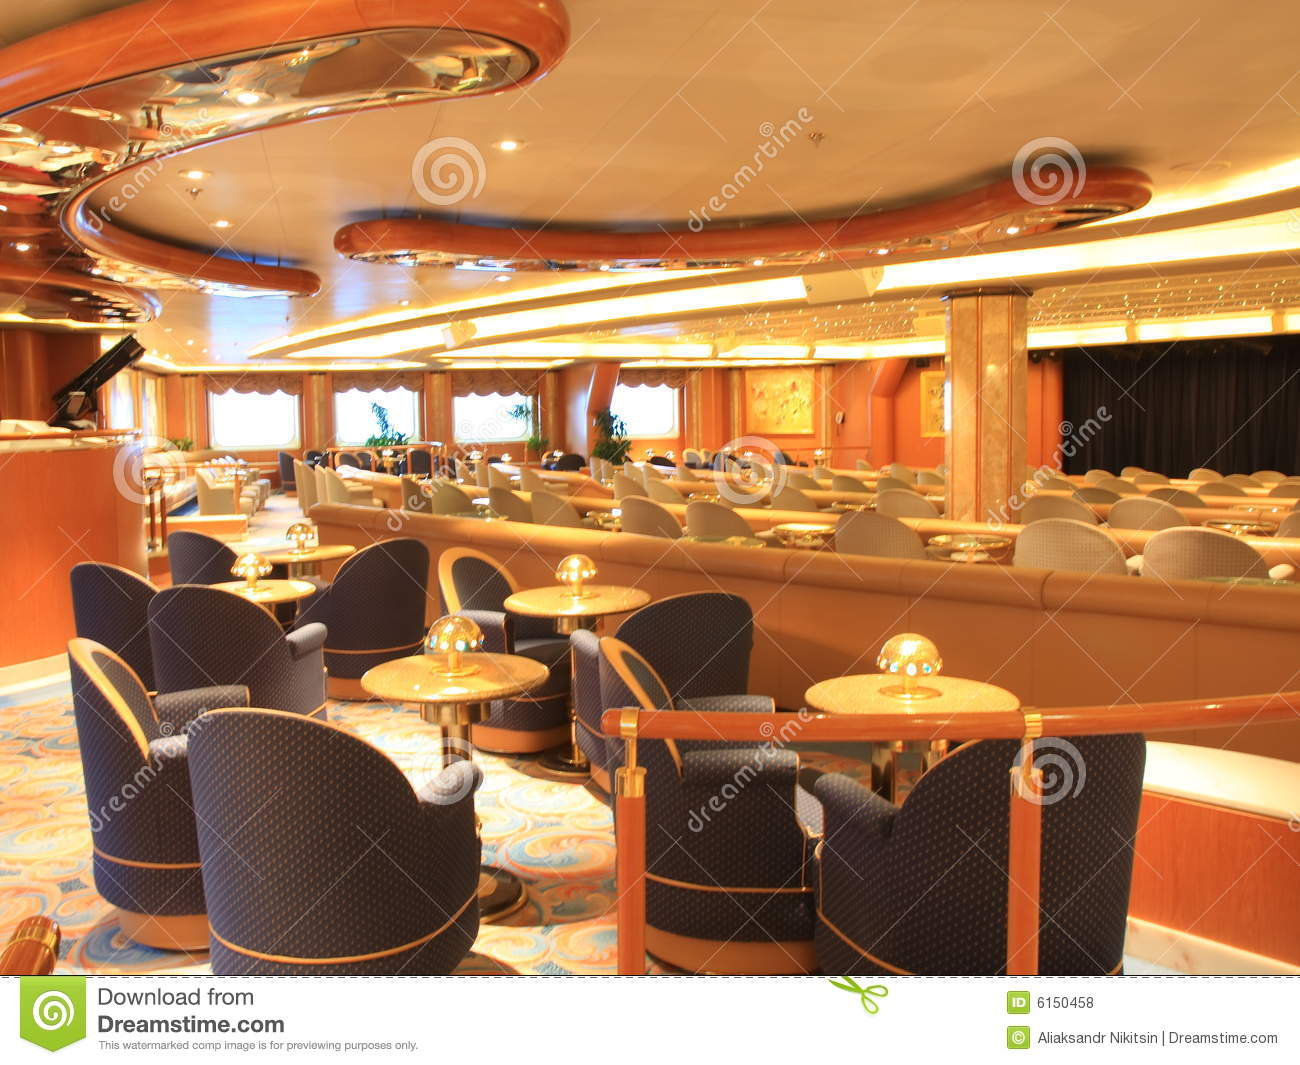 Royalty Free Stock Photos Cruise Ship Interior Image6150458 on fun restaurant interiors